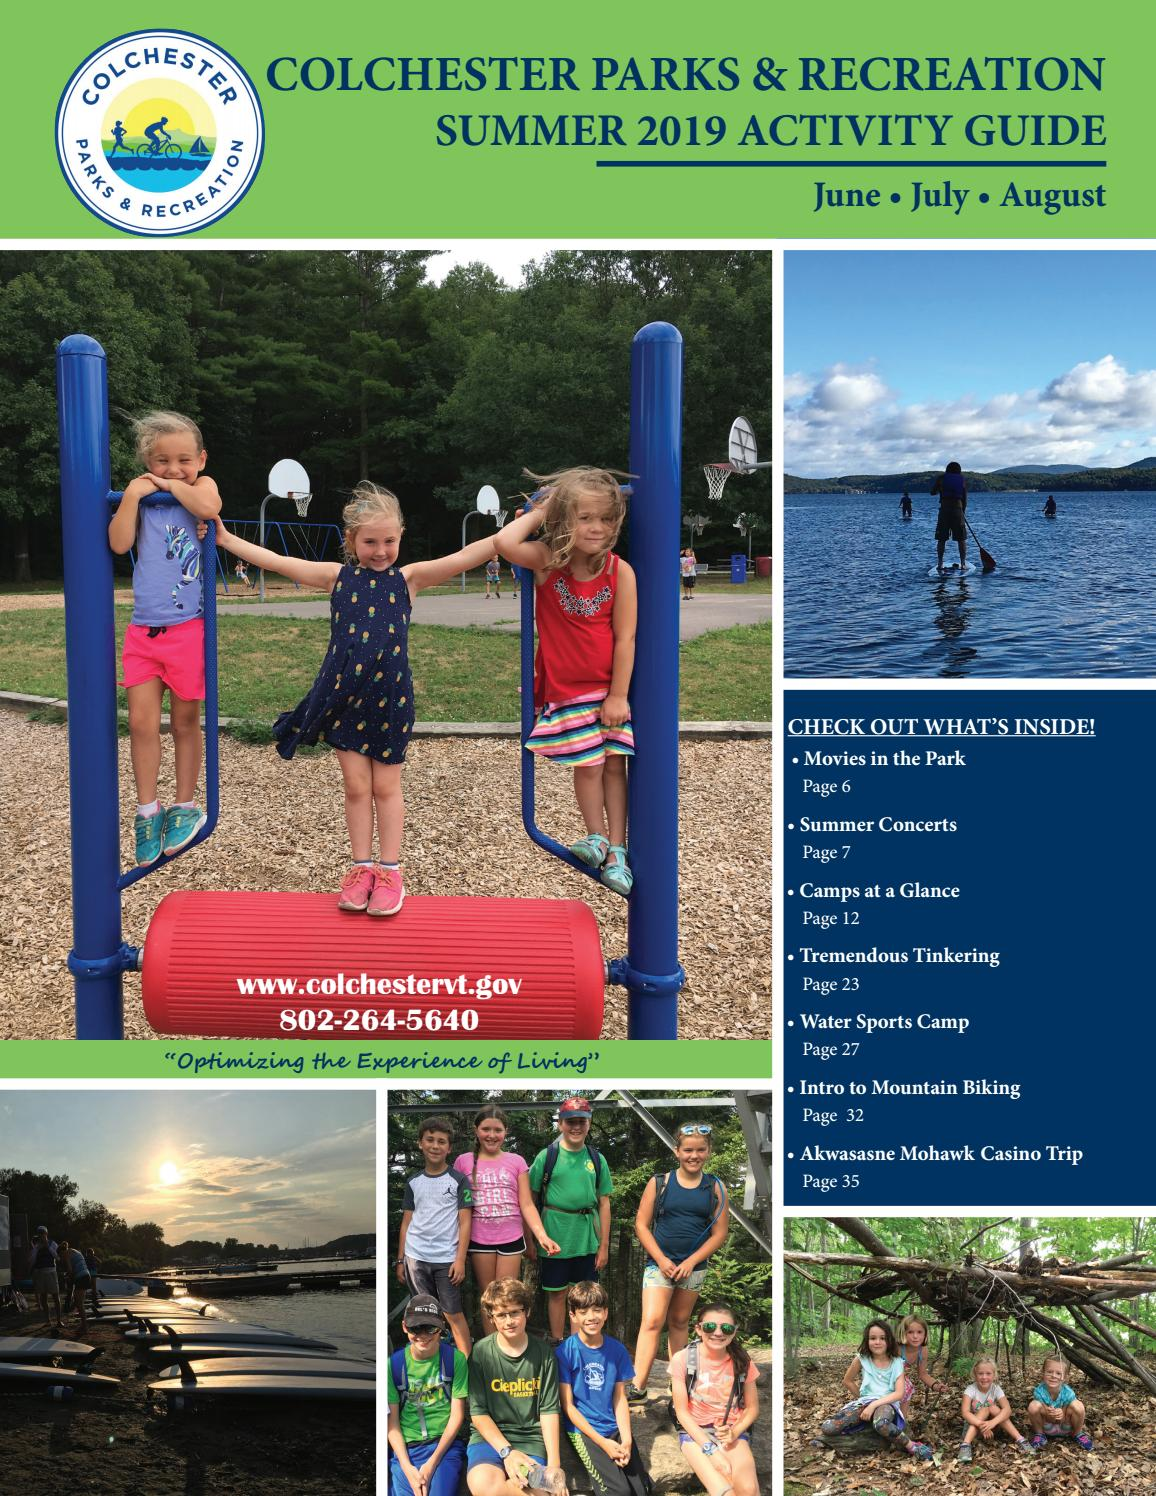 Colchester Vermont Events July 13 2020.2019 Summer Activity Guide By Colchester Parks Recreation